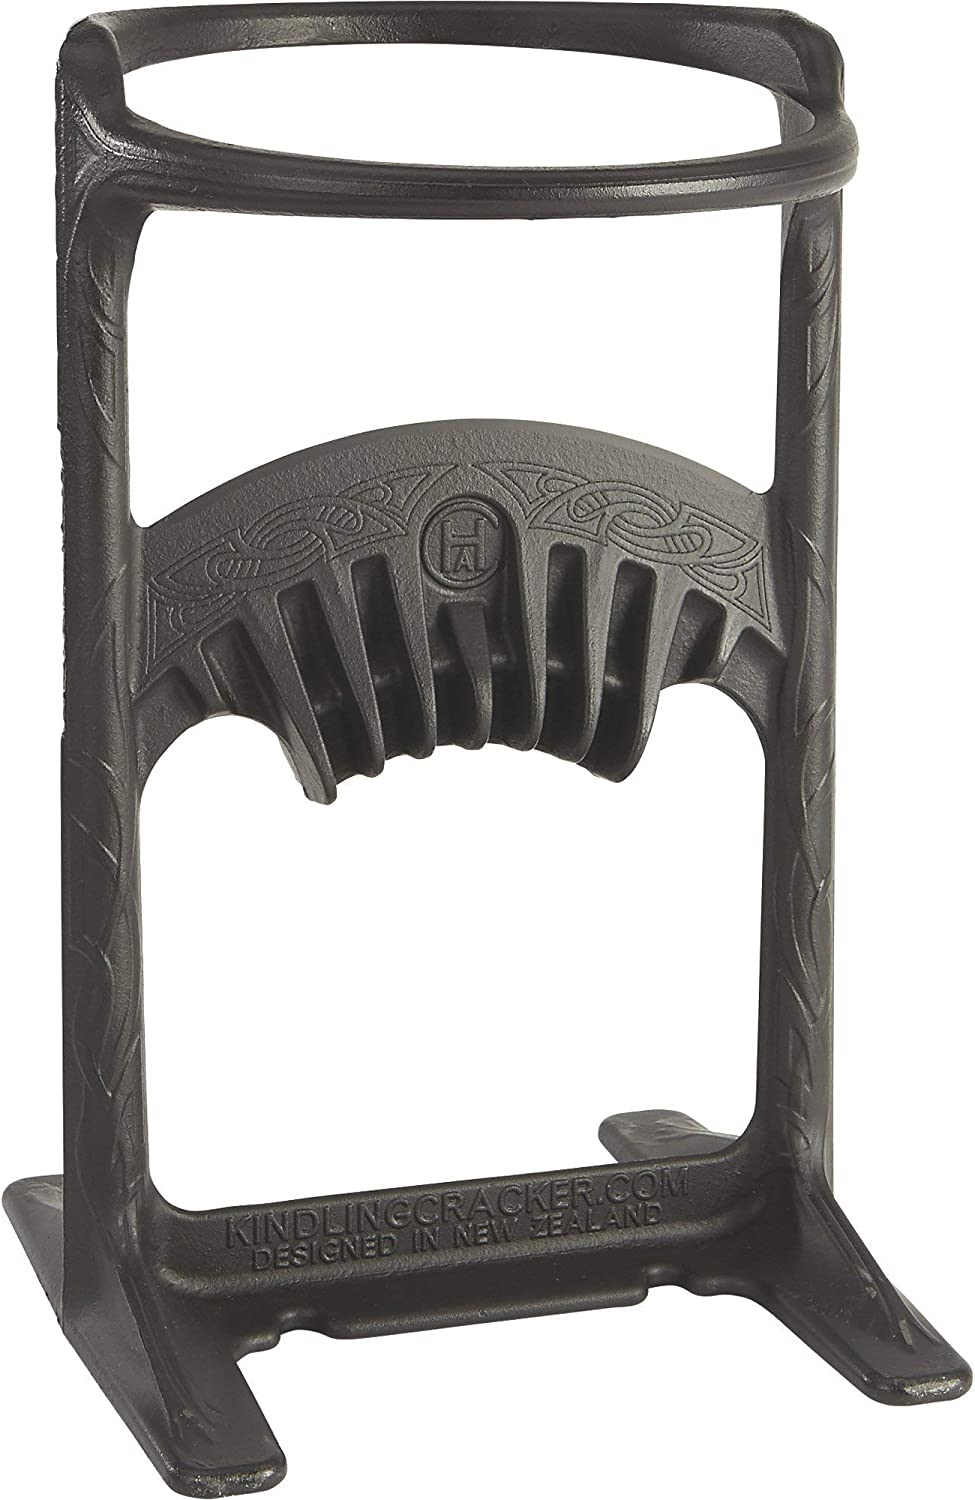 Manual Firewood and Kindling Splitter Made of Cast Iron Safe ...